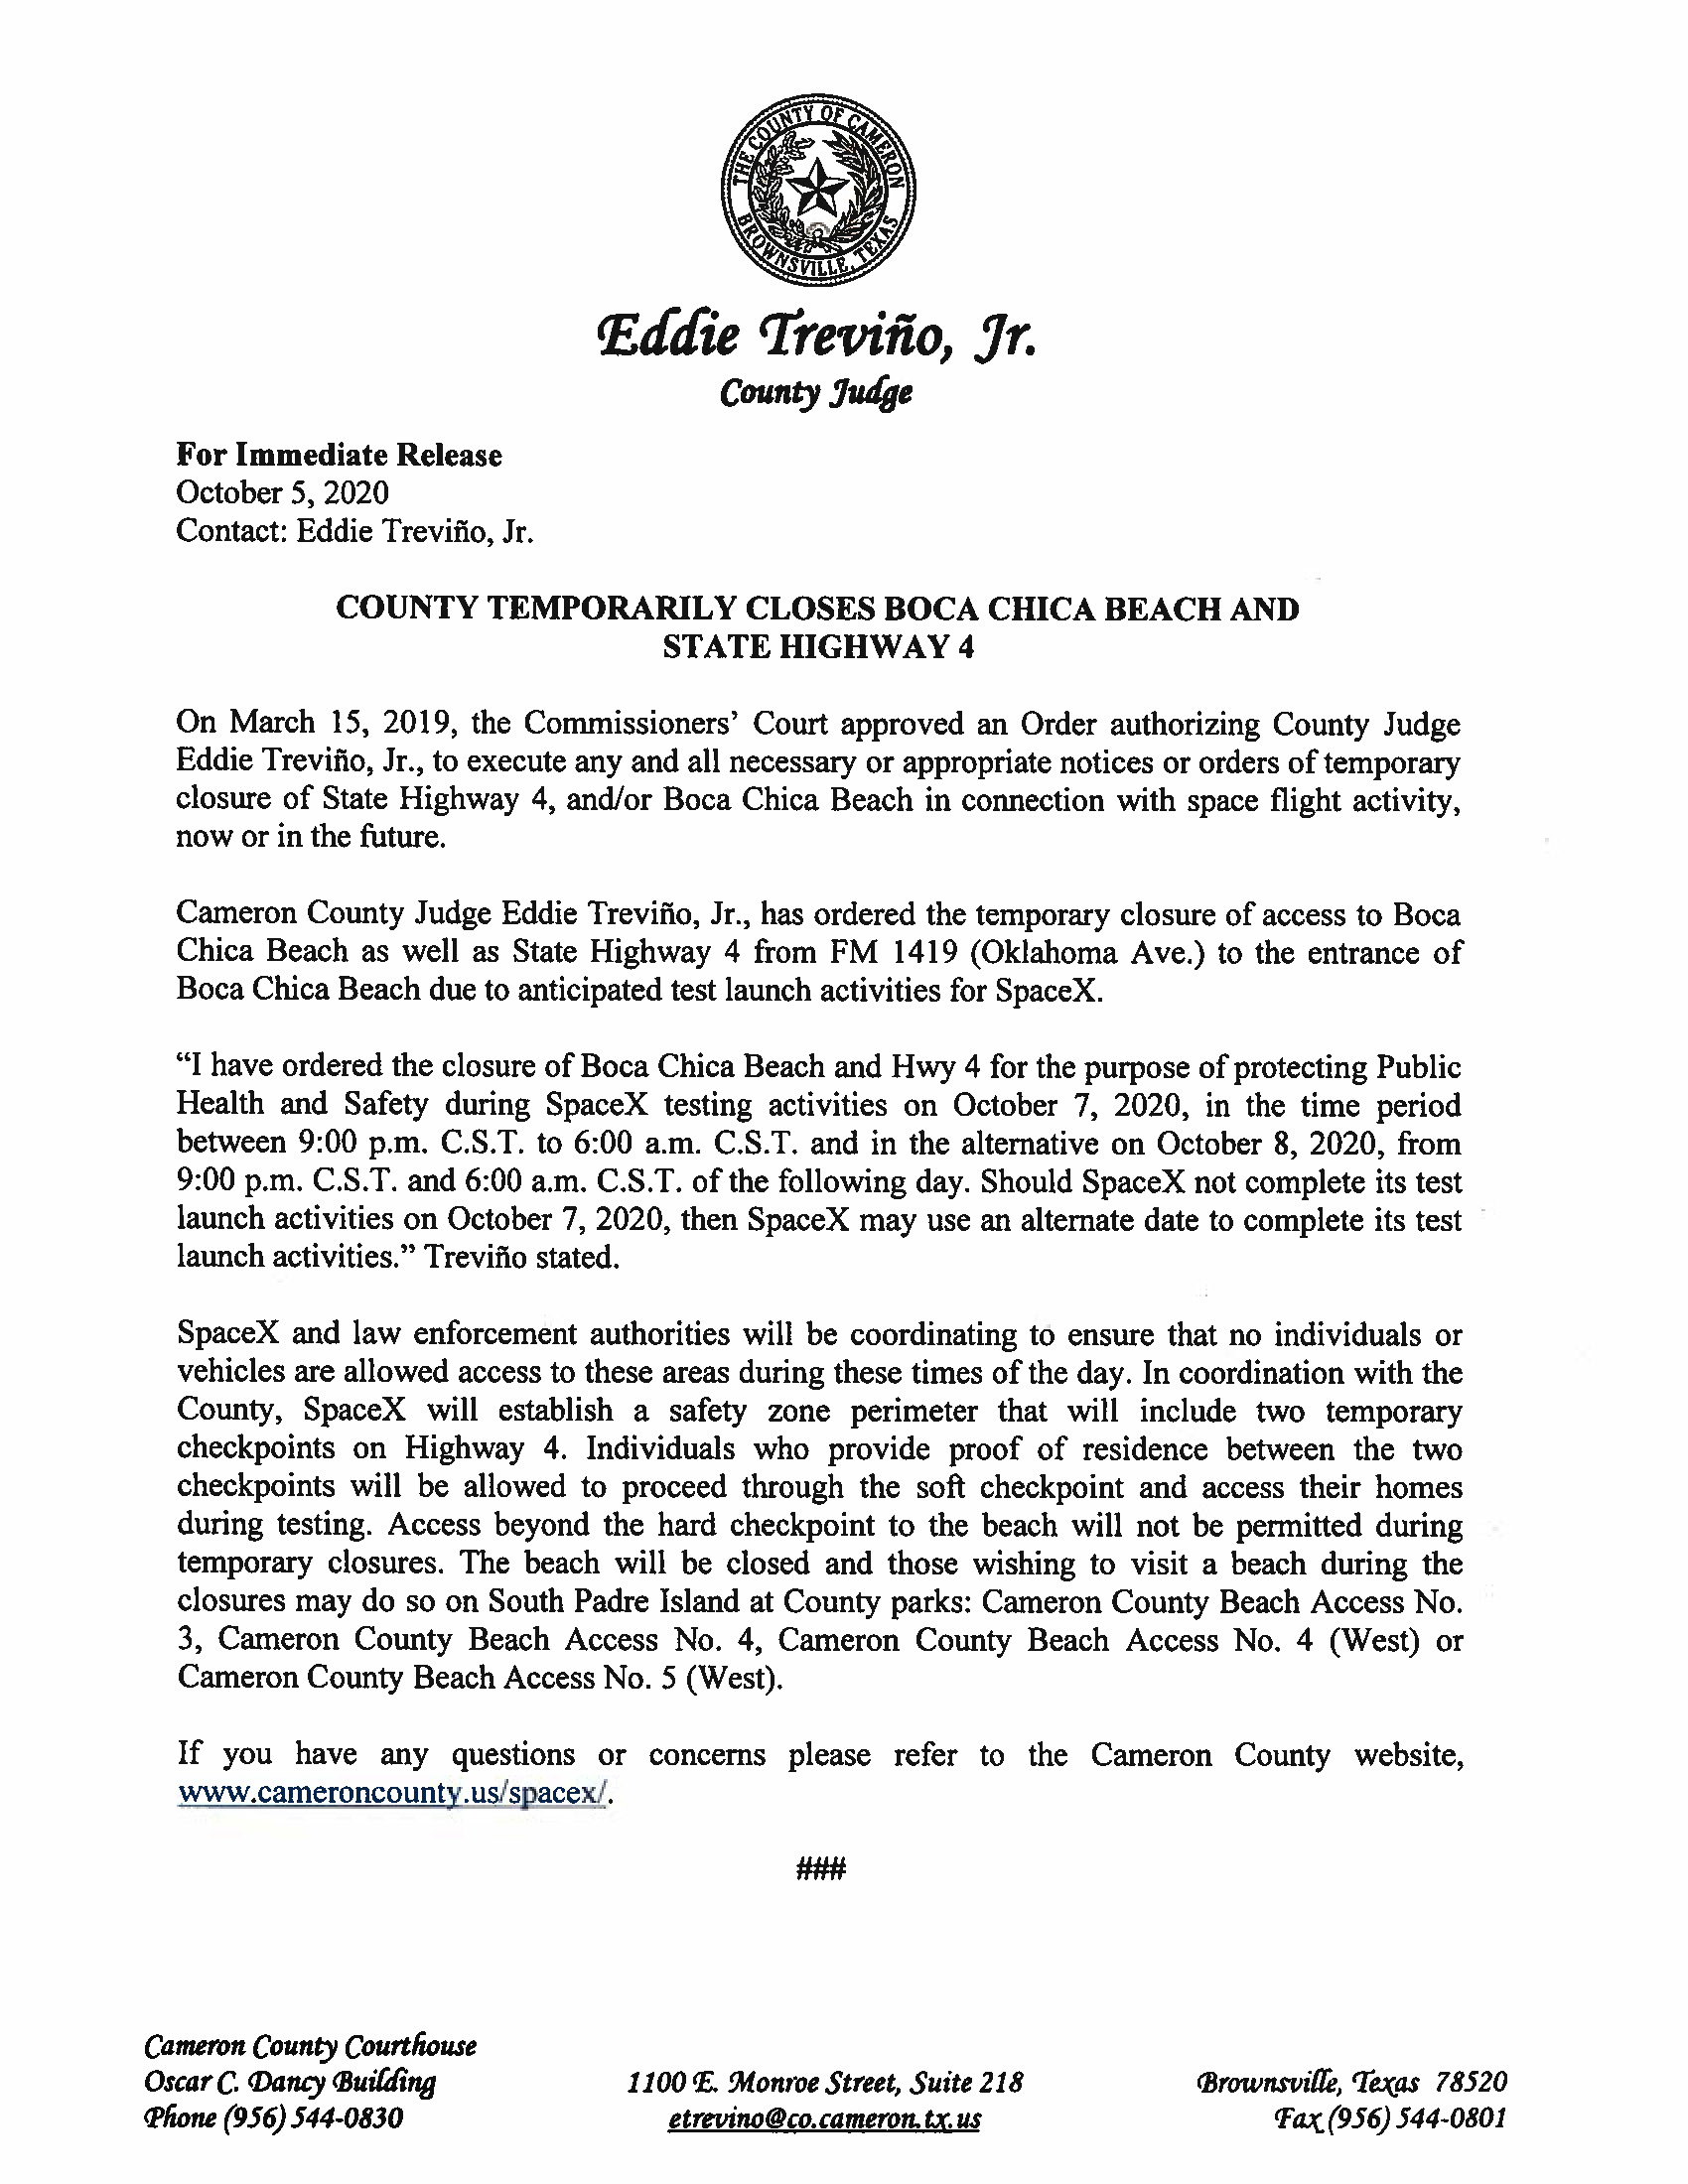 Press Release In English And Spanish.10.07.20 Page 1